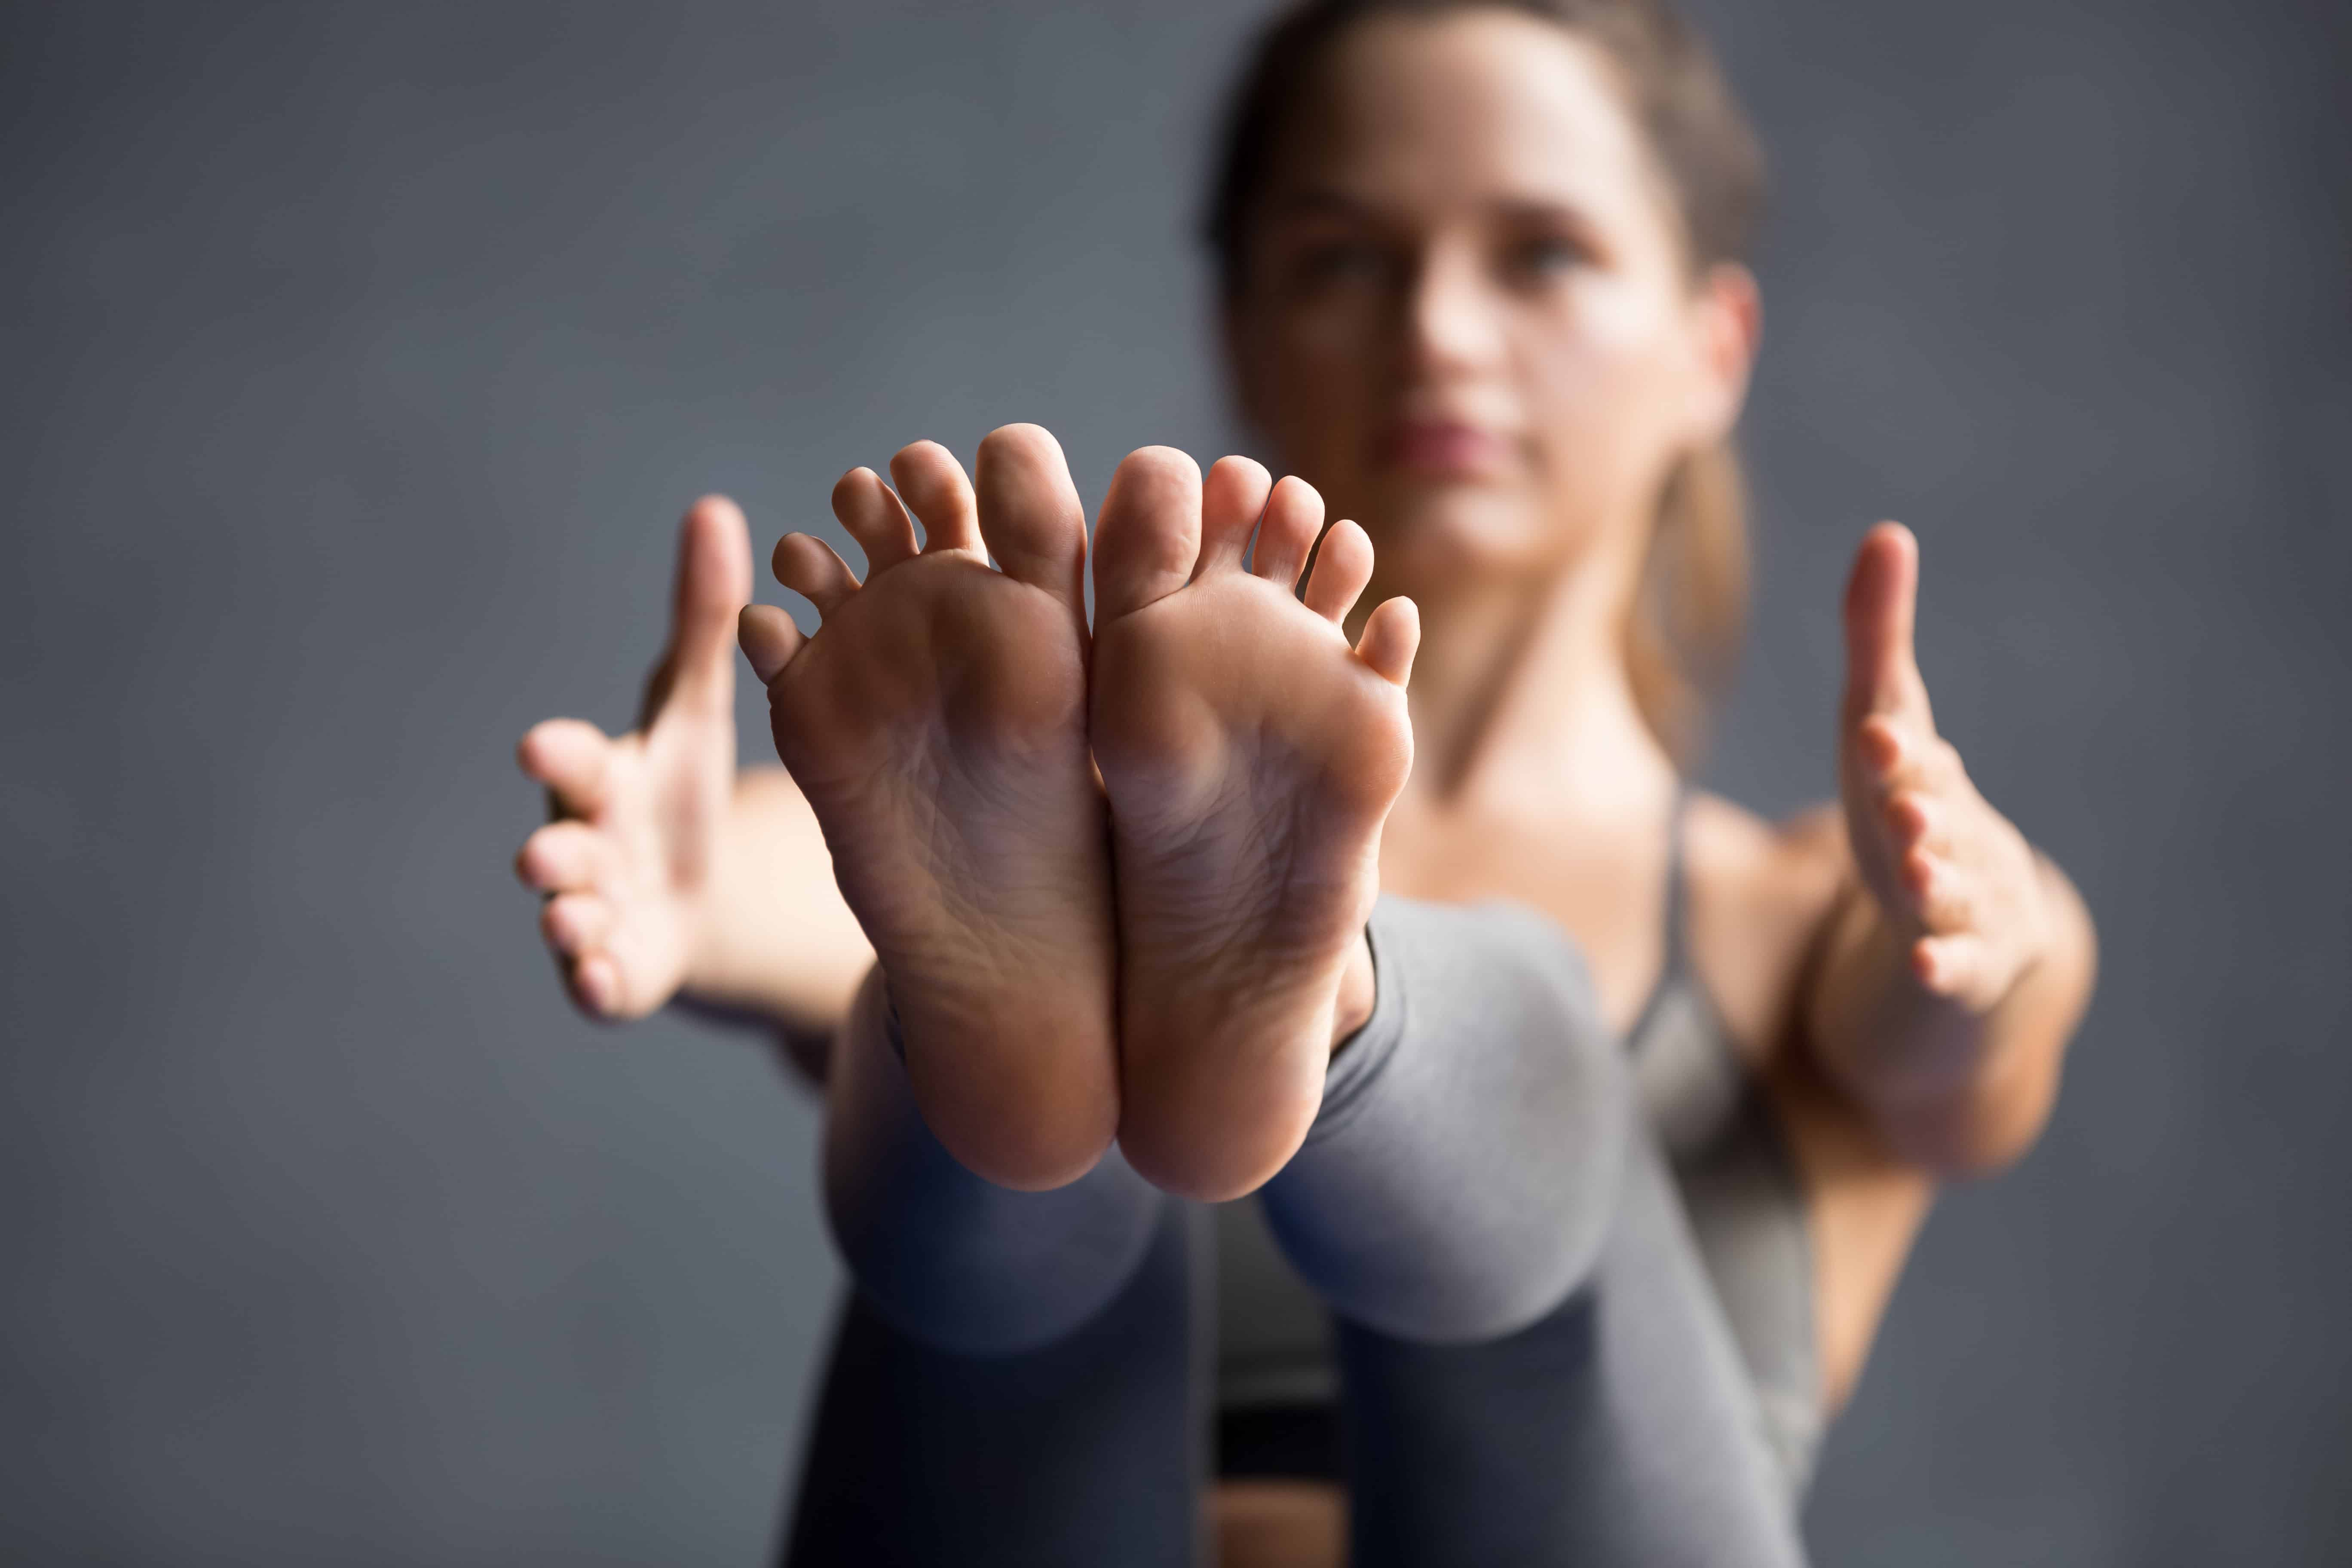 Young sporty woman practicing yoga, doing Paripurna Navasana exercise, boat pose, working out wearing sportswear grey pants, working out, indoor close up view of legs, yoga studio, focus on feet